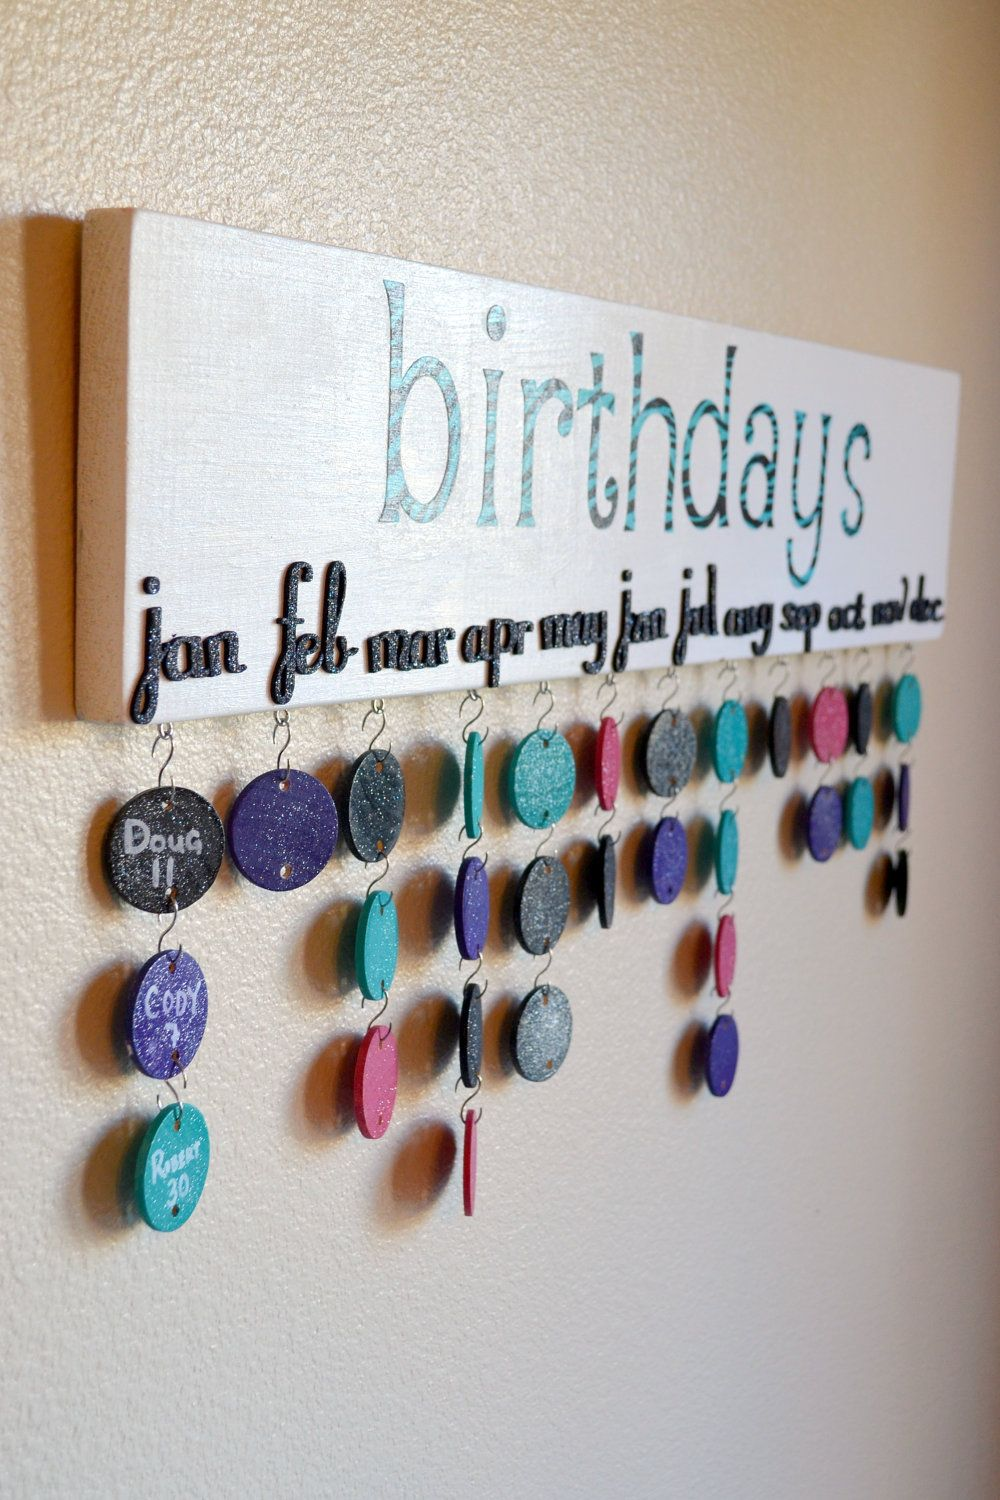 To keep track of family members birthdays cute idea ideas utiles